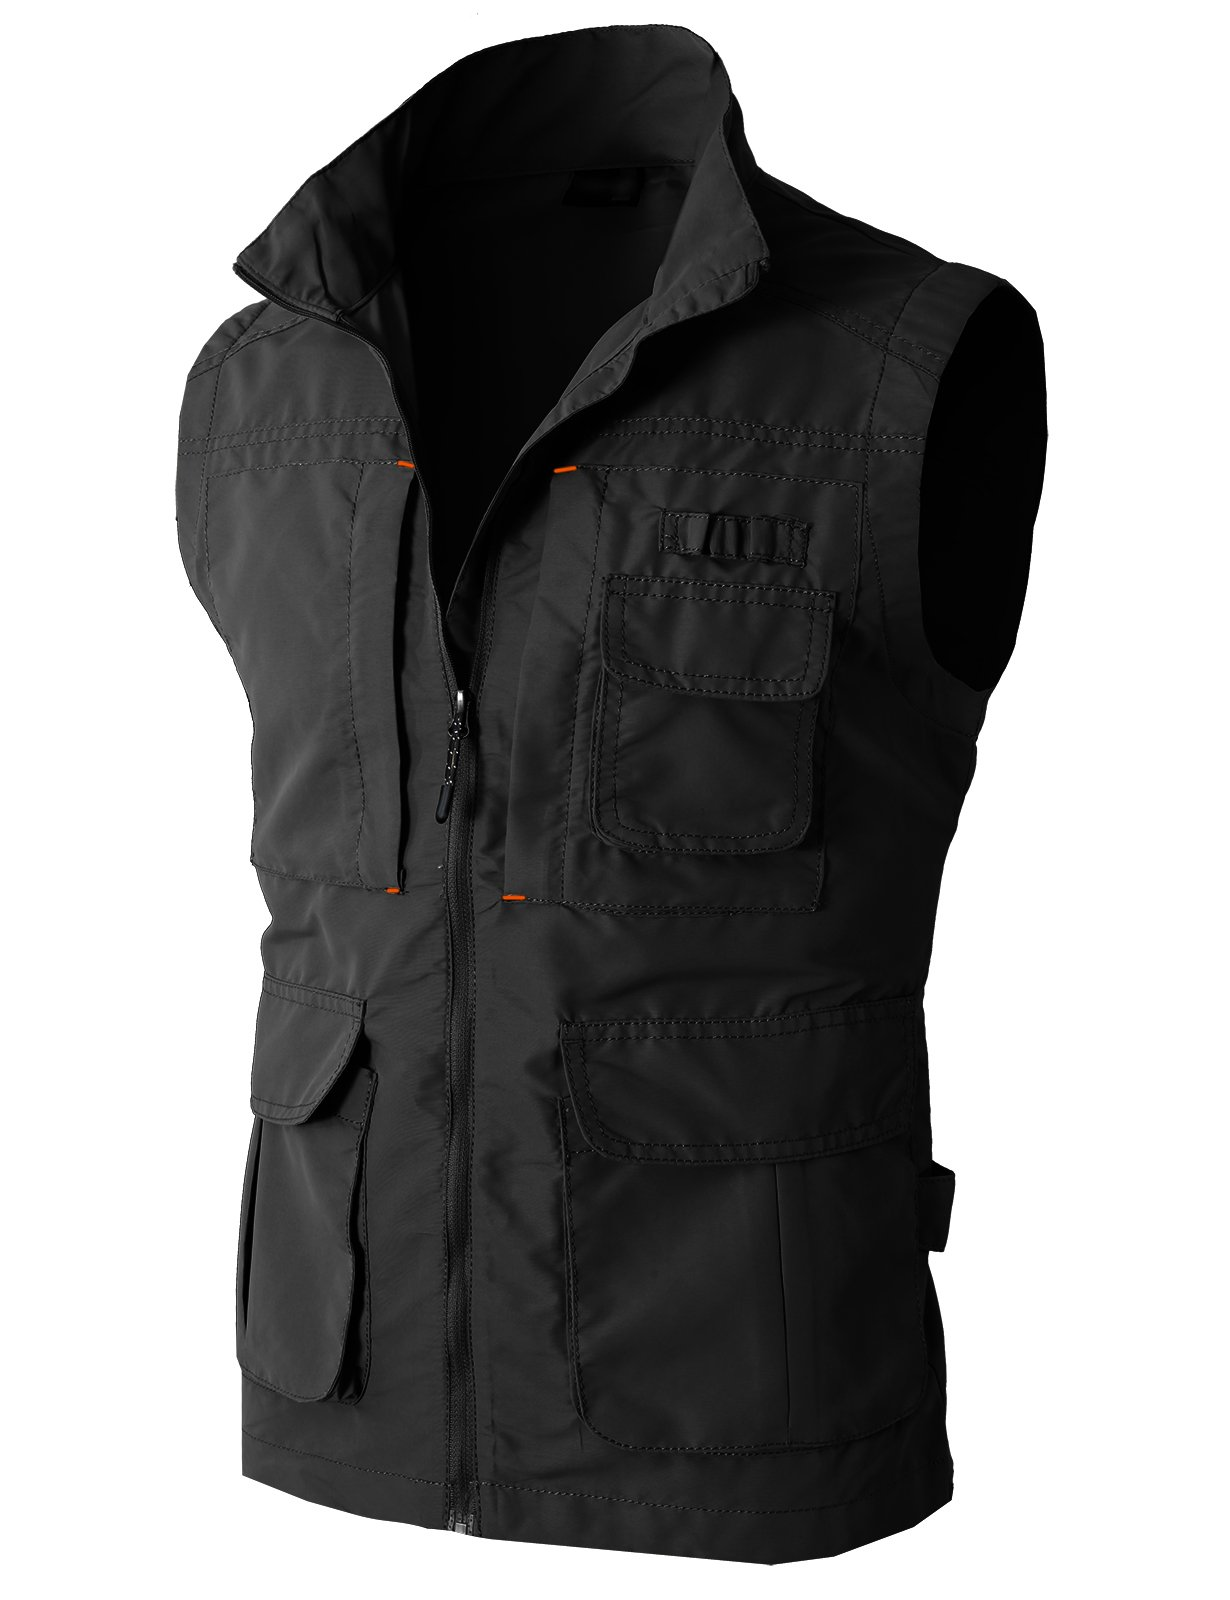 H2H Men's Plus Big and Tall Fishing Photographer Mesh Vest Outdoor Waistcoat Black US M/Asia L (KMOV081) by H2H